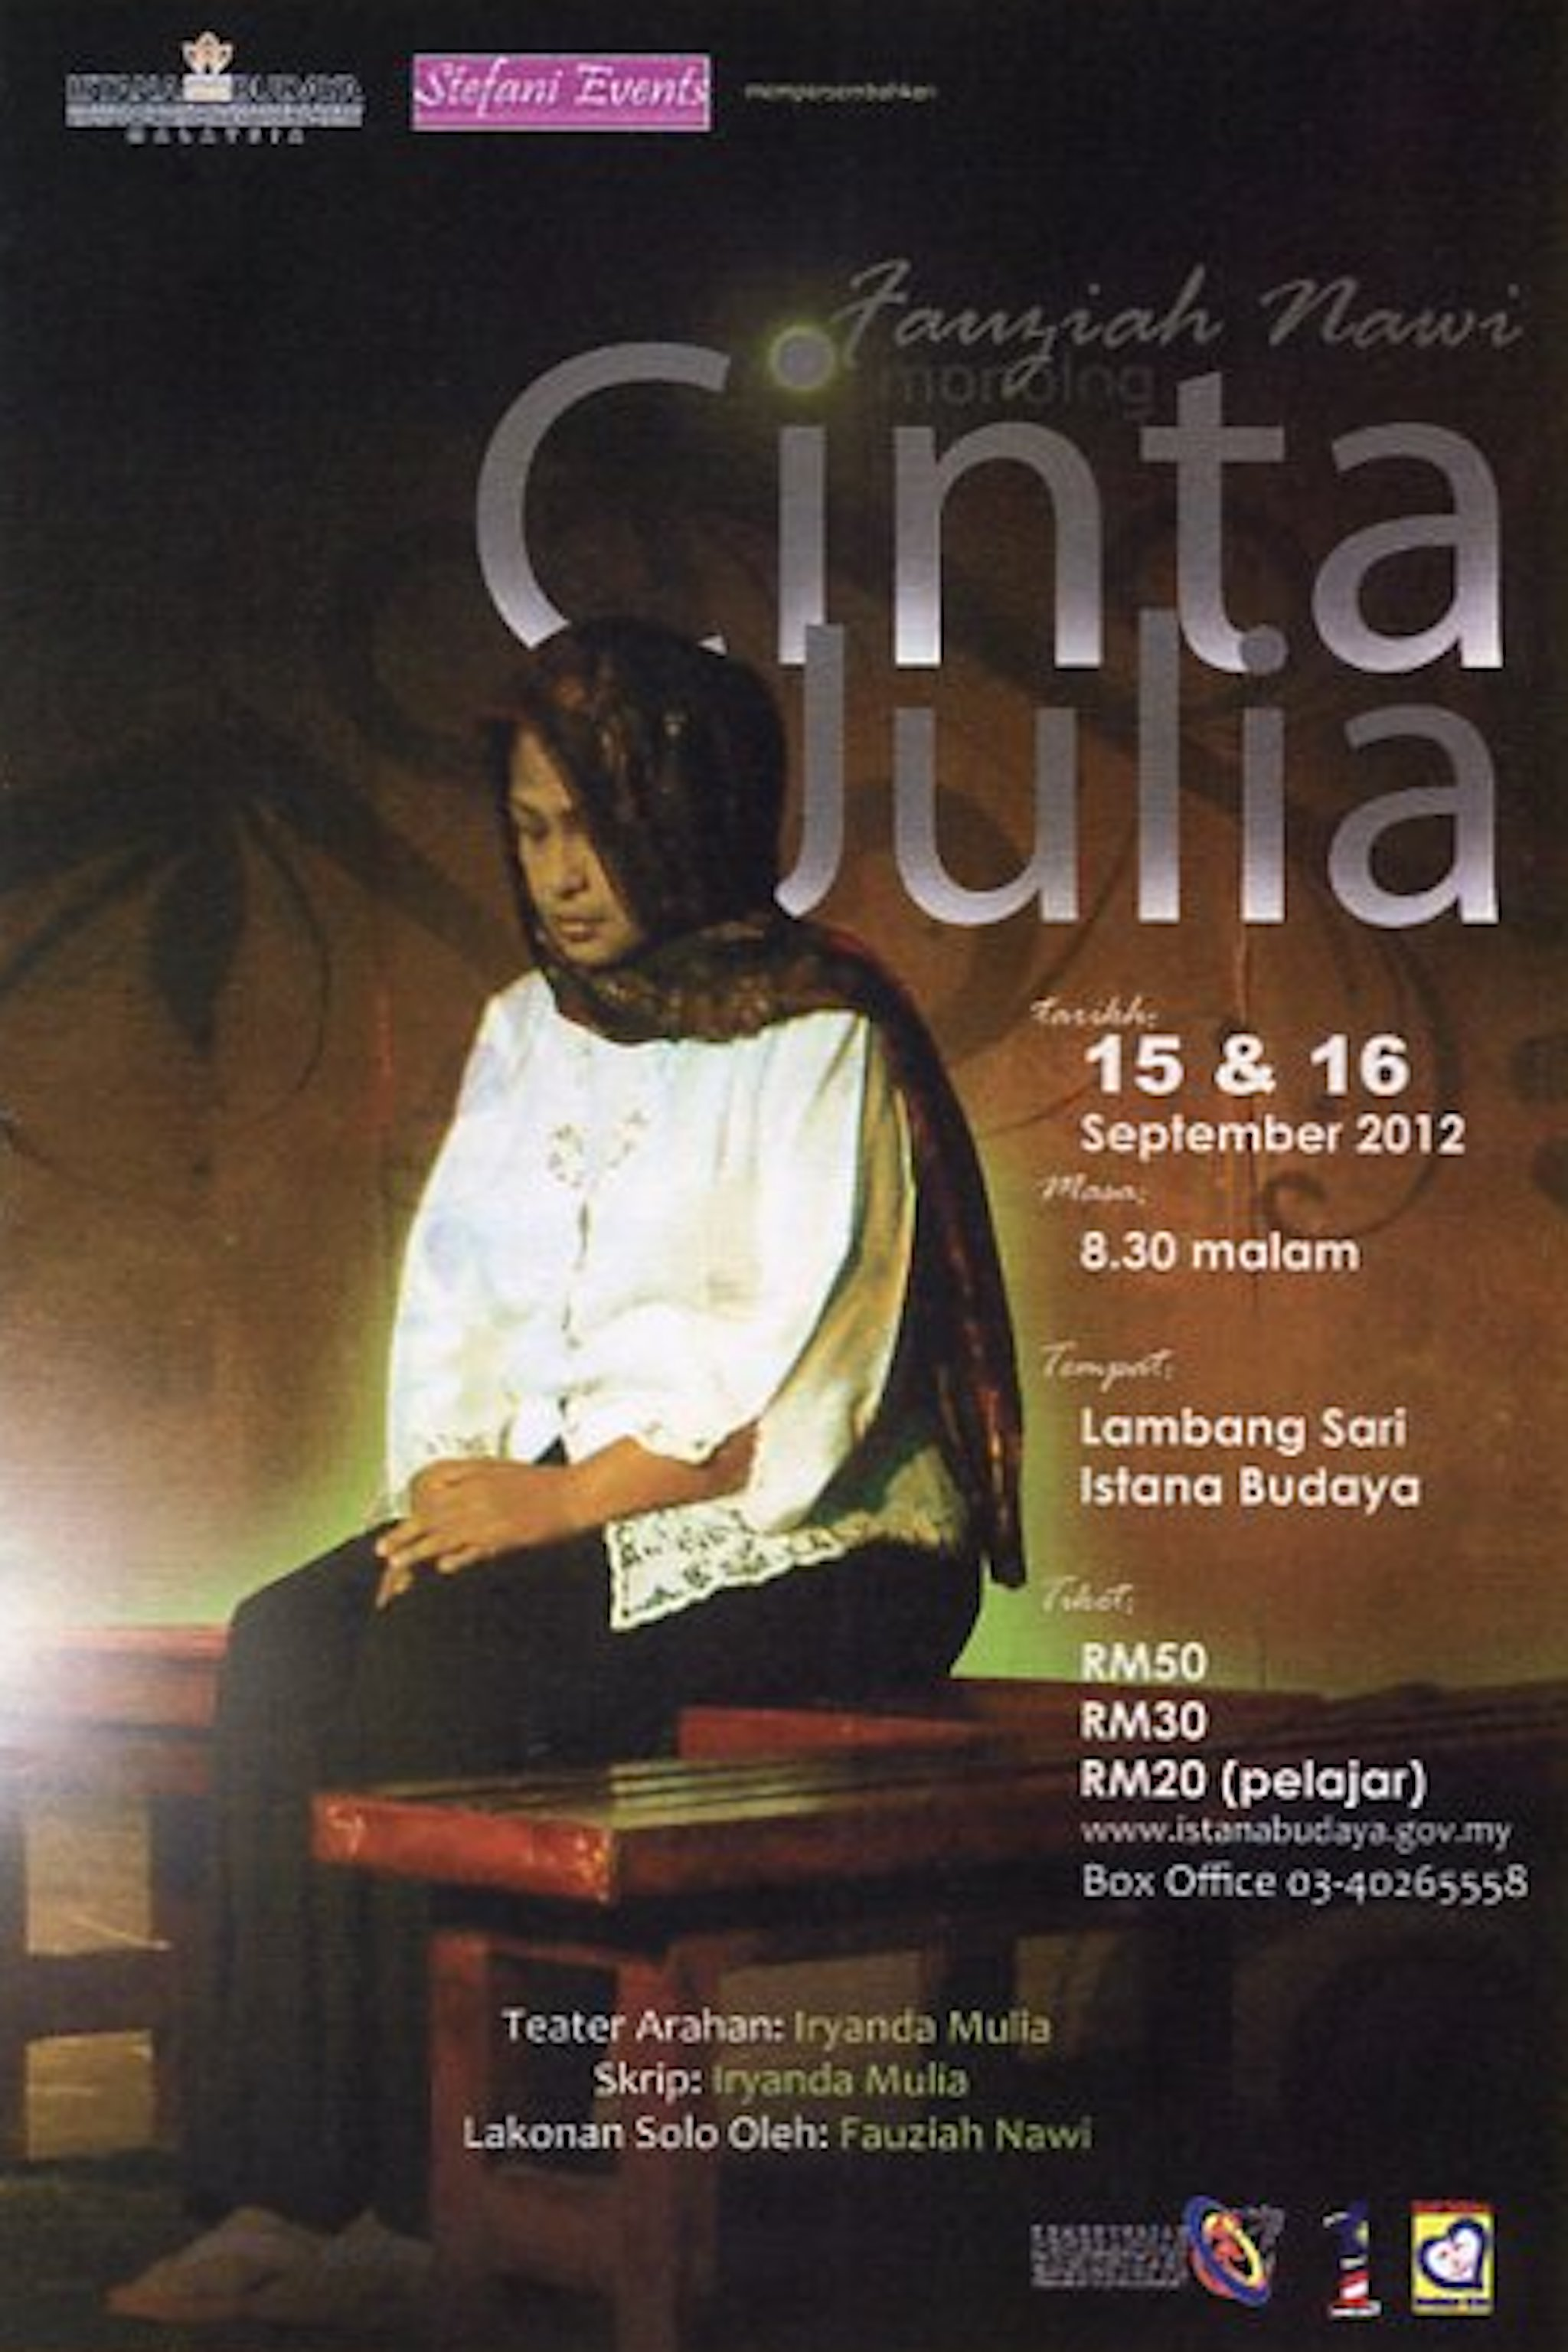 2012 Monolog Cinta Julia cover